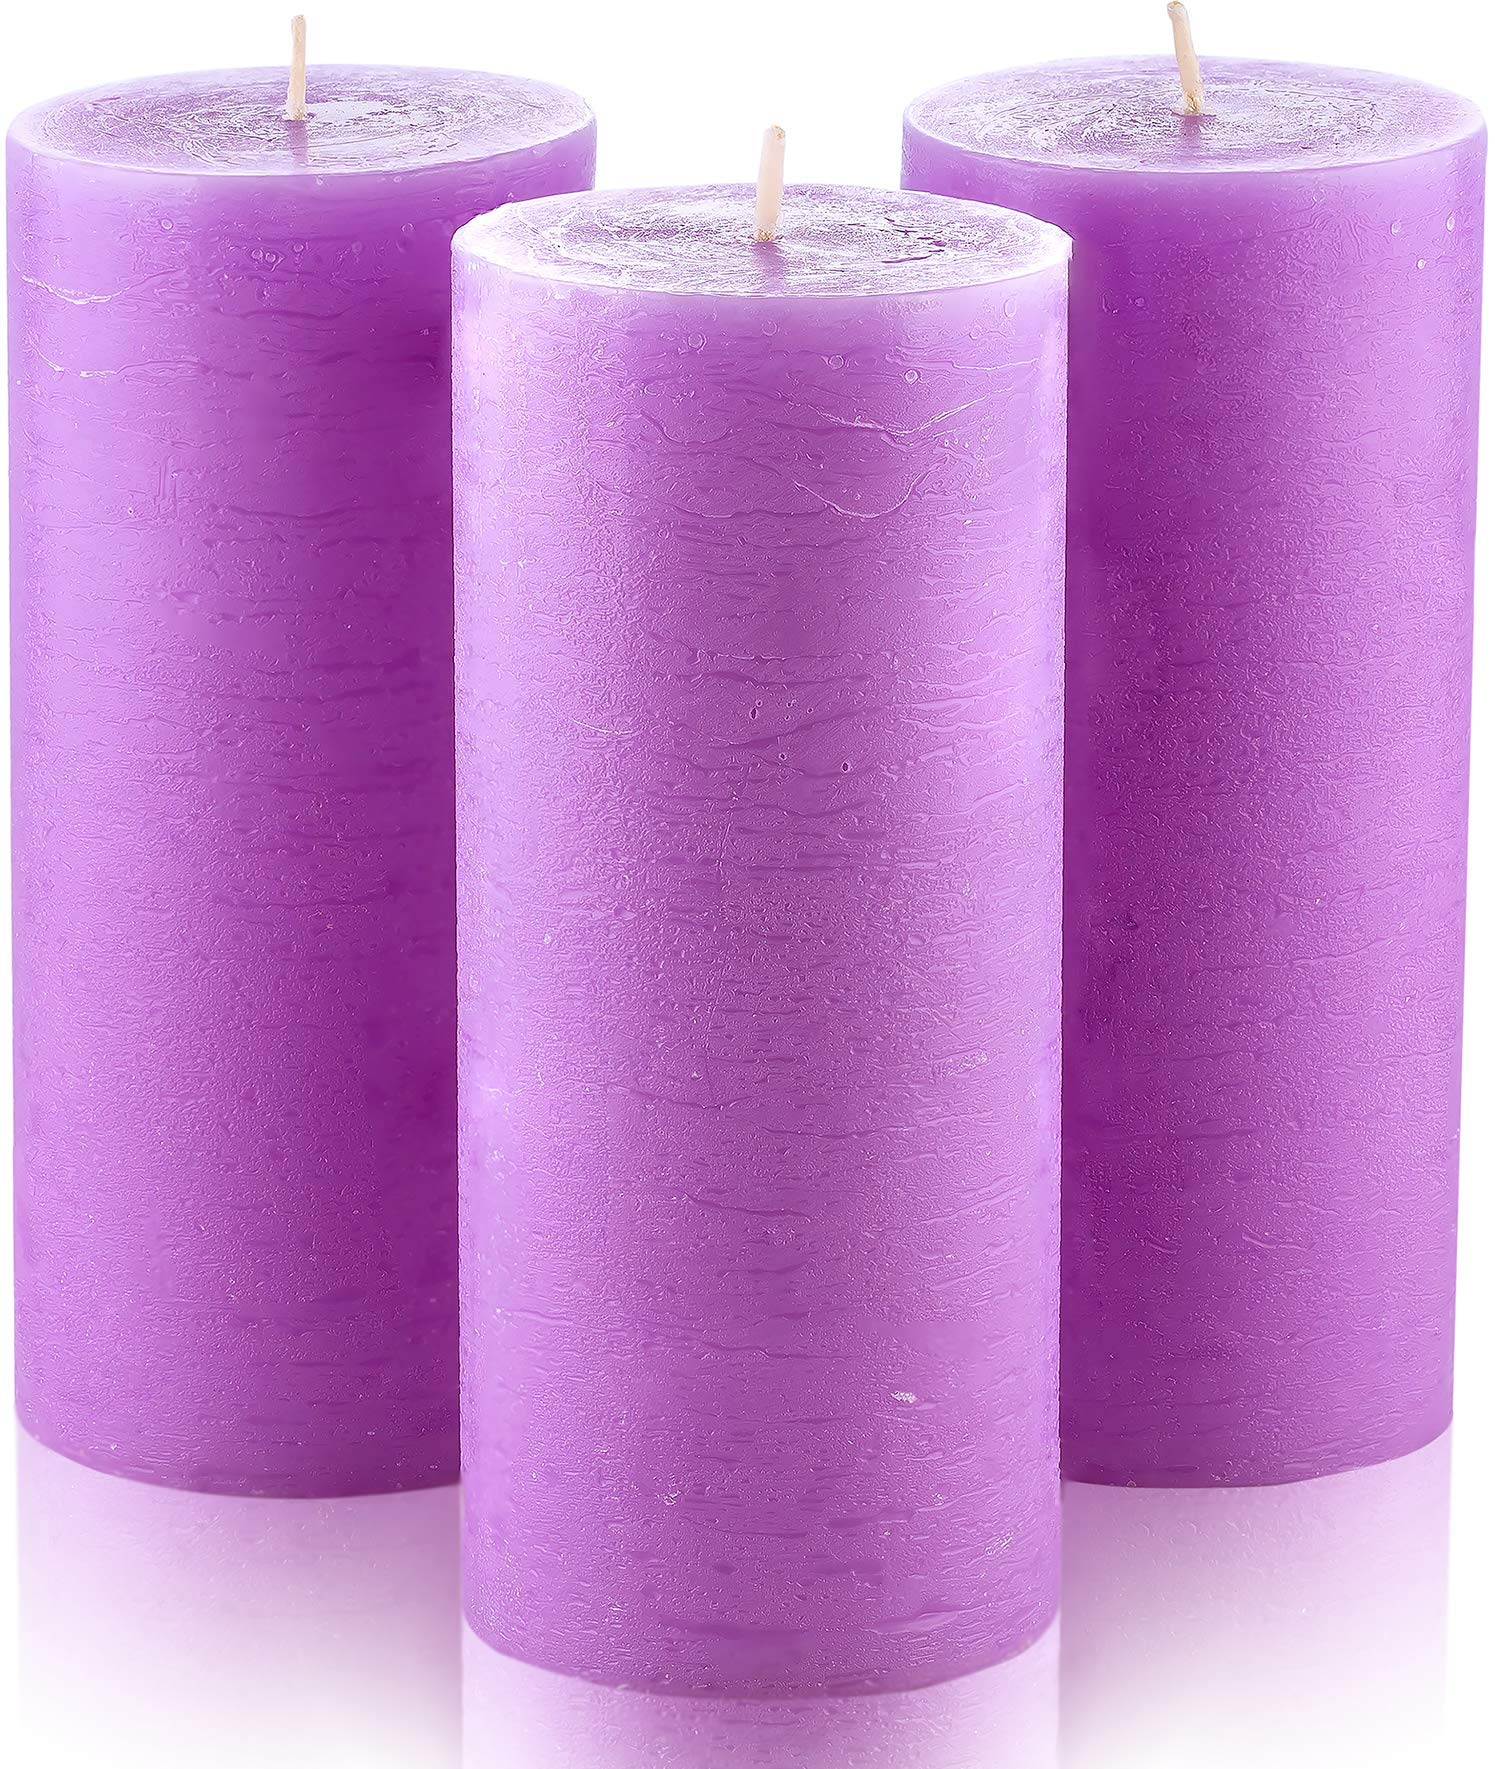 """Melt Candle Company Set of 3 Lilac Pillar Candles 3"""" x 6"""" Unscented Purple Violet Lavender Color for Weddings Home Decoration Restaurant Spa Smokeless Cotton Wick"""